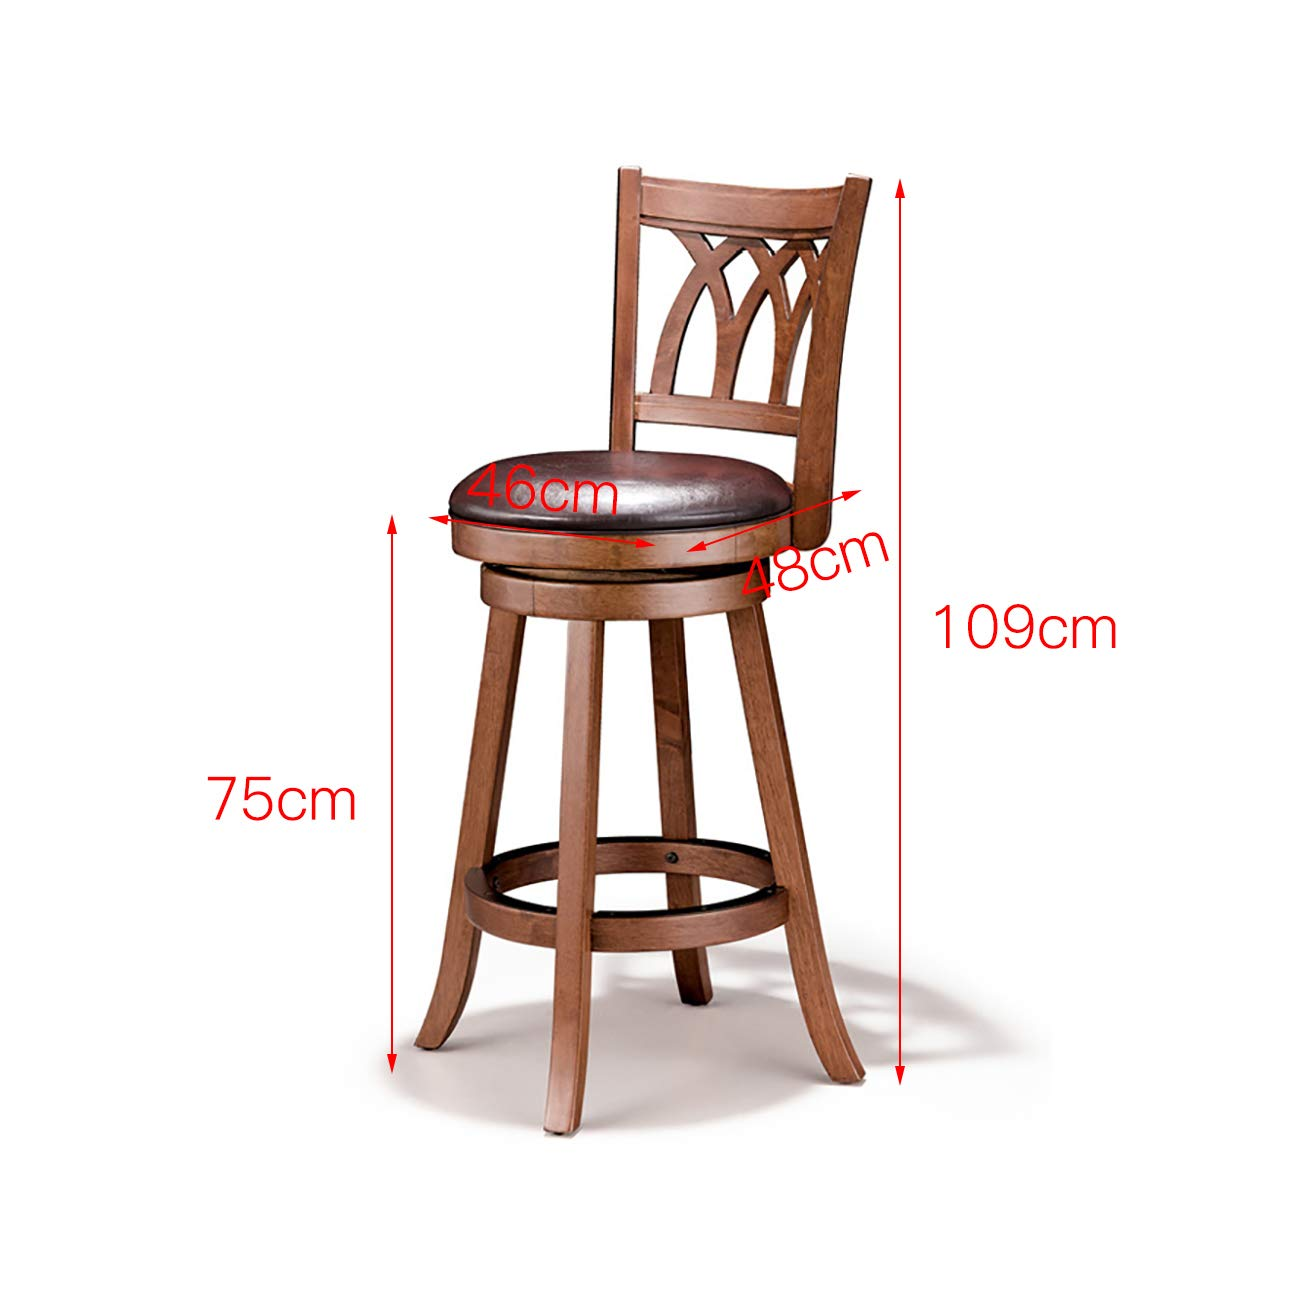 Furniture American Bar Chair Retro Lift And Rotate Solid Wood Chairs Stool The Front Desk Chair Solid Wood Bar Chair Bar Stool Sale Price